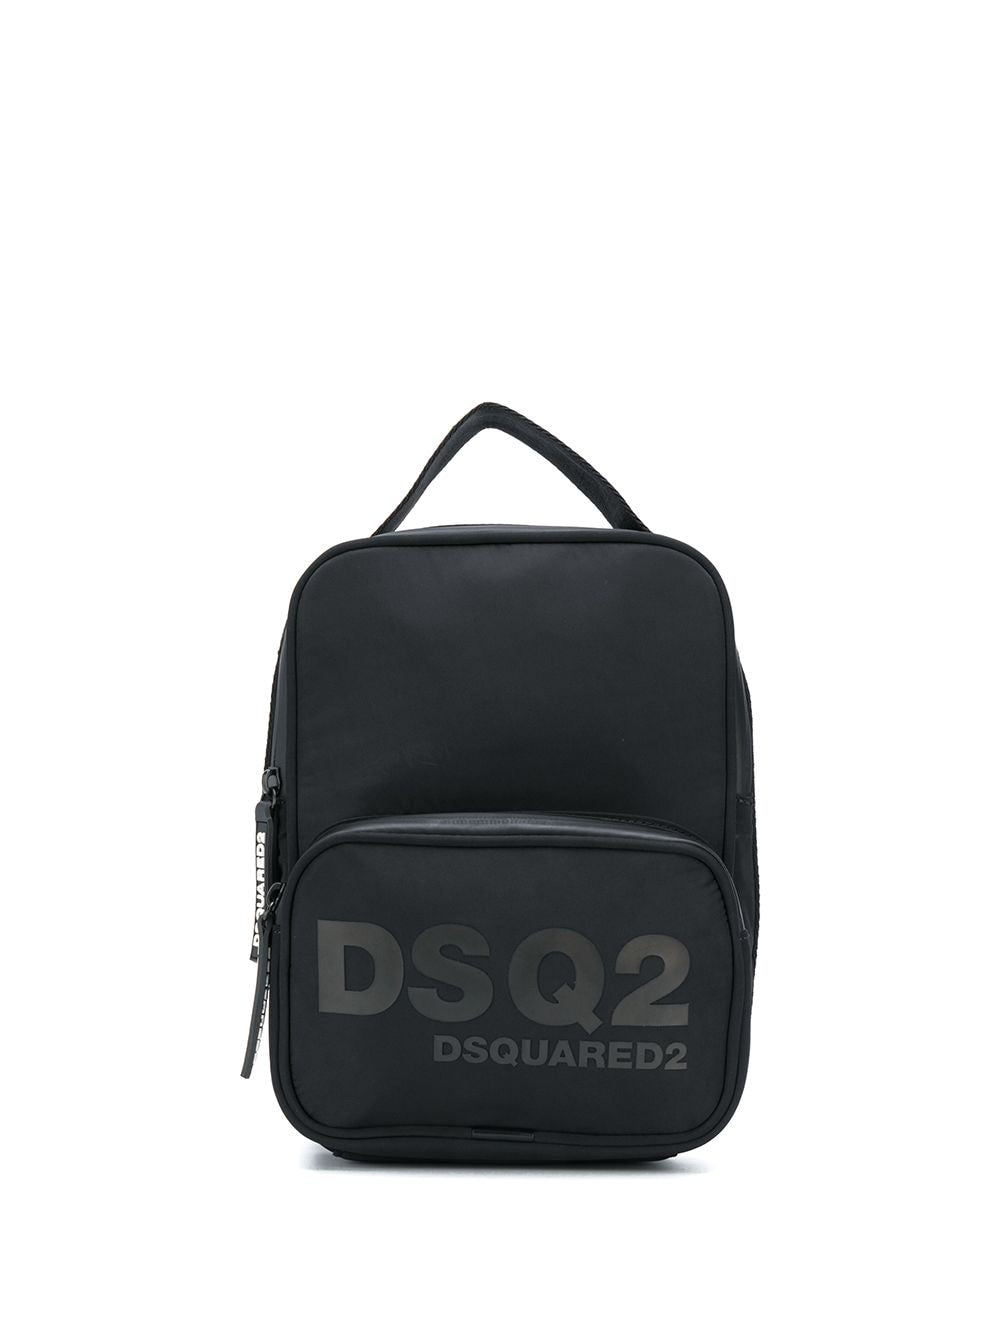 DSQUARED2 'DSQ2' Logo Crossbody Bag Black